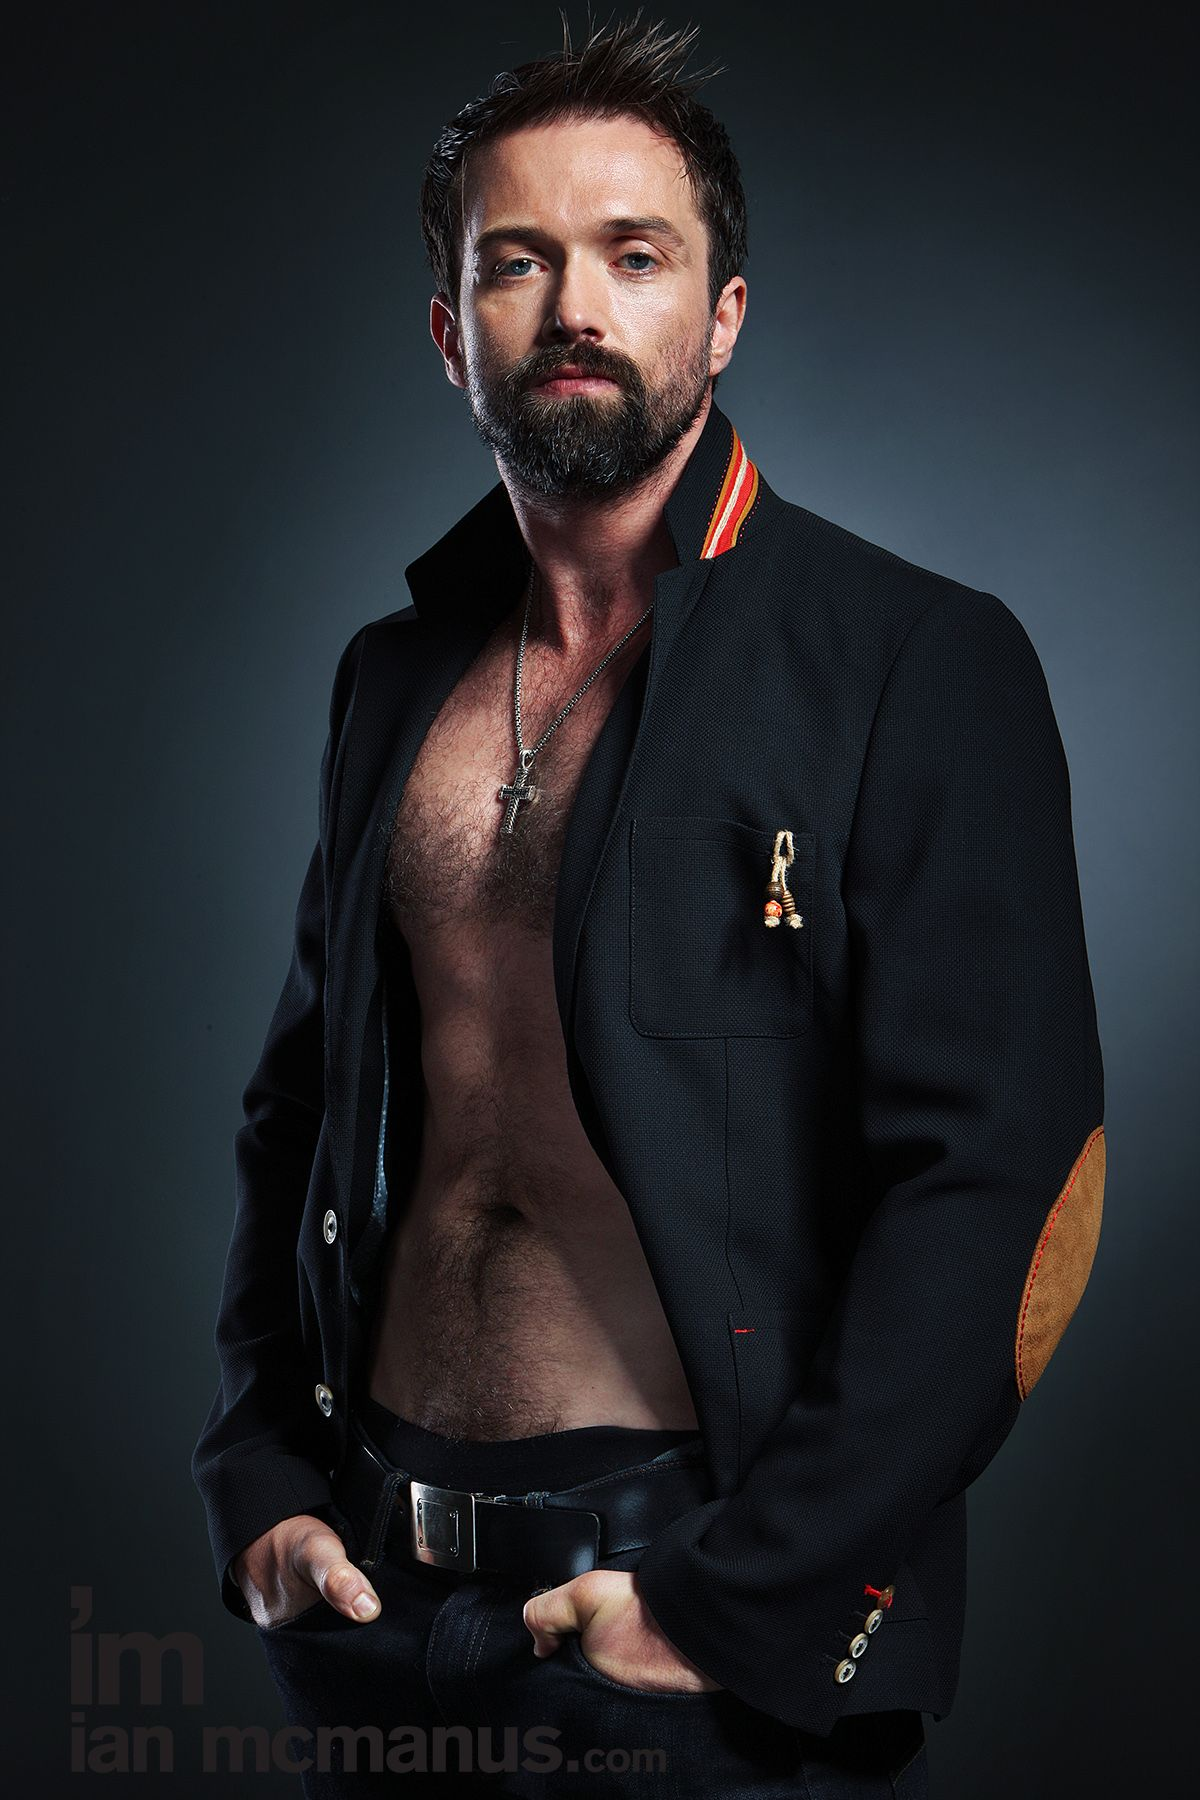 emmett j scanlan tumblremmett j scanlan hollyoaks, emmett j scanlan instagram, emmett j scanlan, emmett j scanlan twitter, emmett j scanlan guardians of the galaxy, emmett j scanlan the fall, emmett j scanlan imdb, emmett j scanlan tumblr, emmett j scanlan in the flesh, emmett j scanlan wife, emmett j scanlan height, emmett j scanlan agent, emmett j scanlan luke newberry, emmett j scanlan and claire cooper, emmett j scanlan daughter, emmett j scanlan and claire cooper wedding, emmett j scanlan hollyoaks return, emmett j scanlan wedding, emmett j scanlan and claire cooper split, emmett j scanlan movies and tv shows